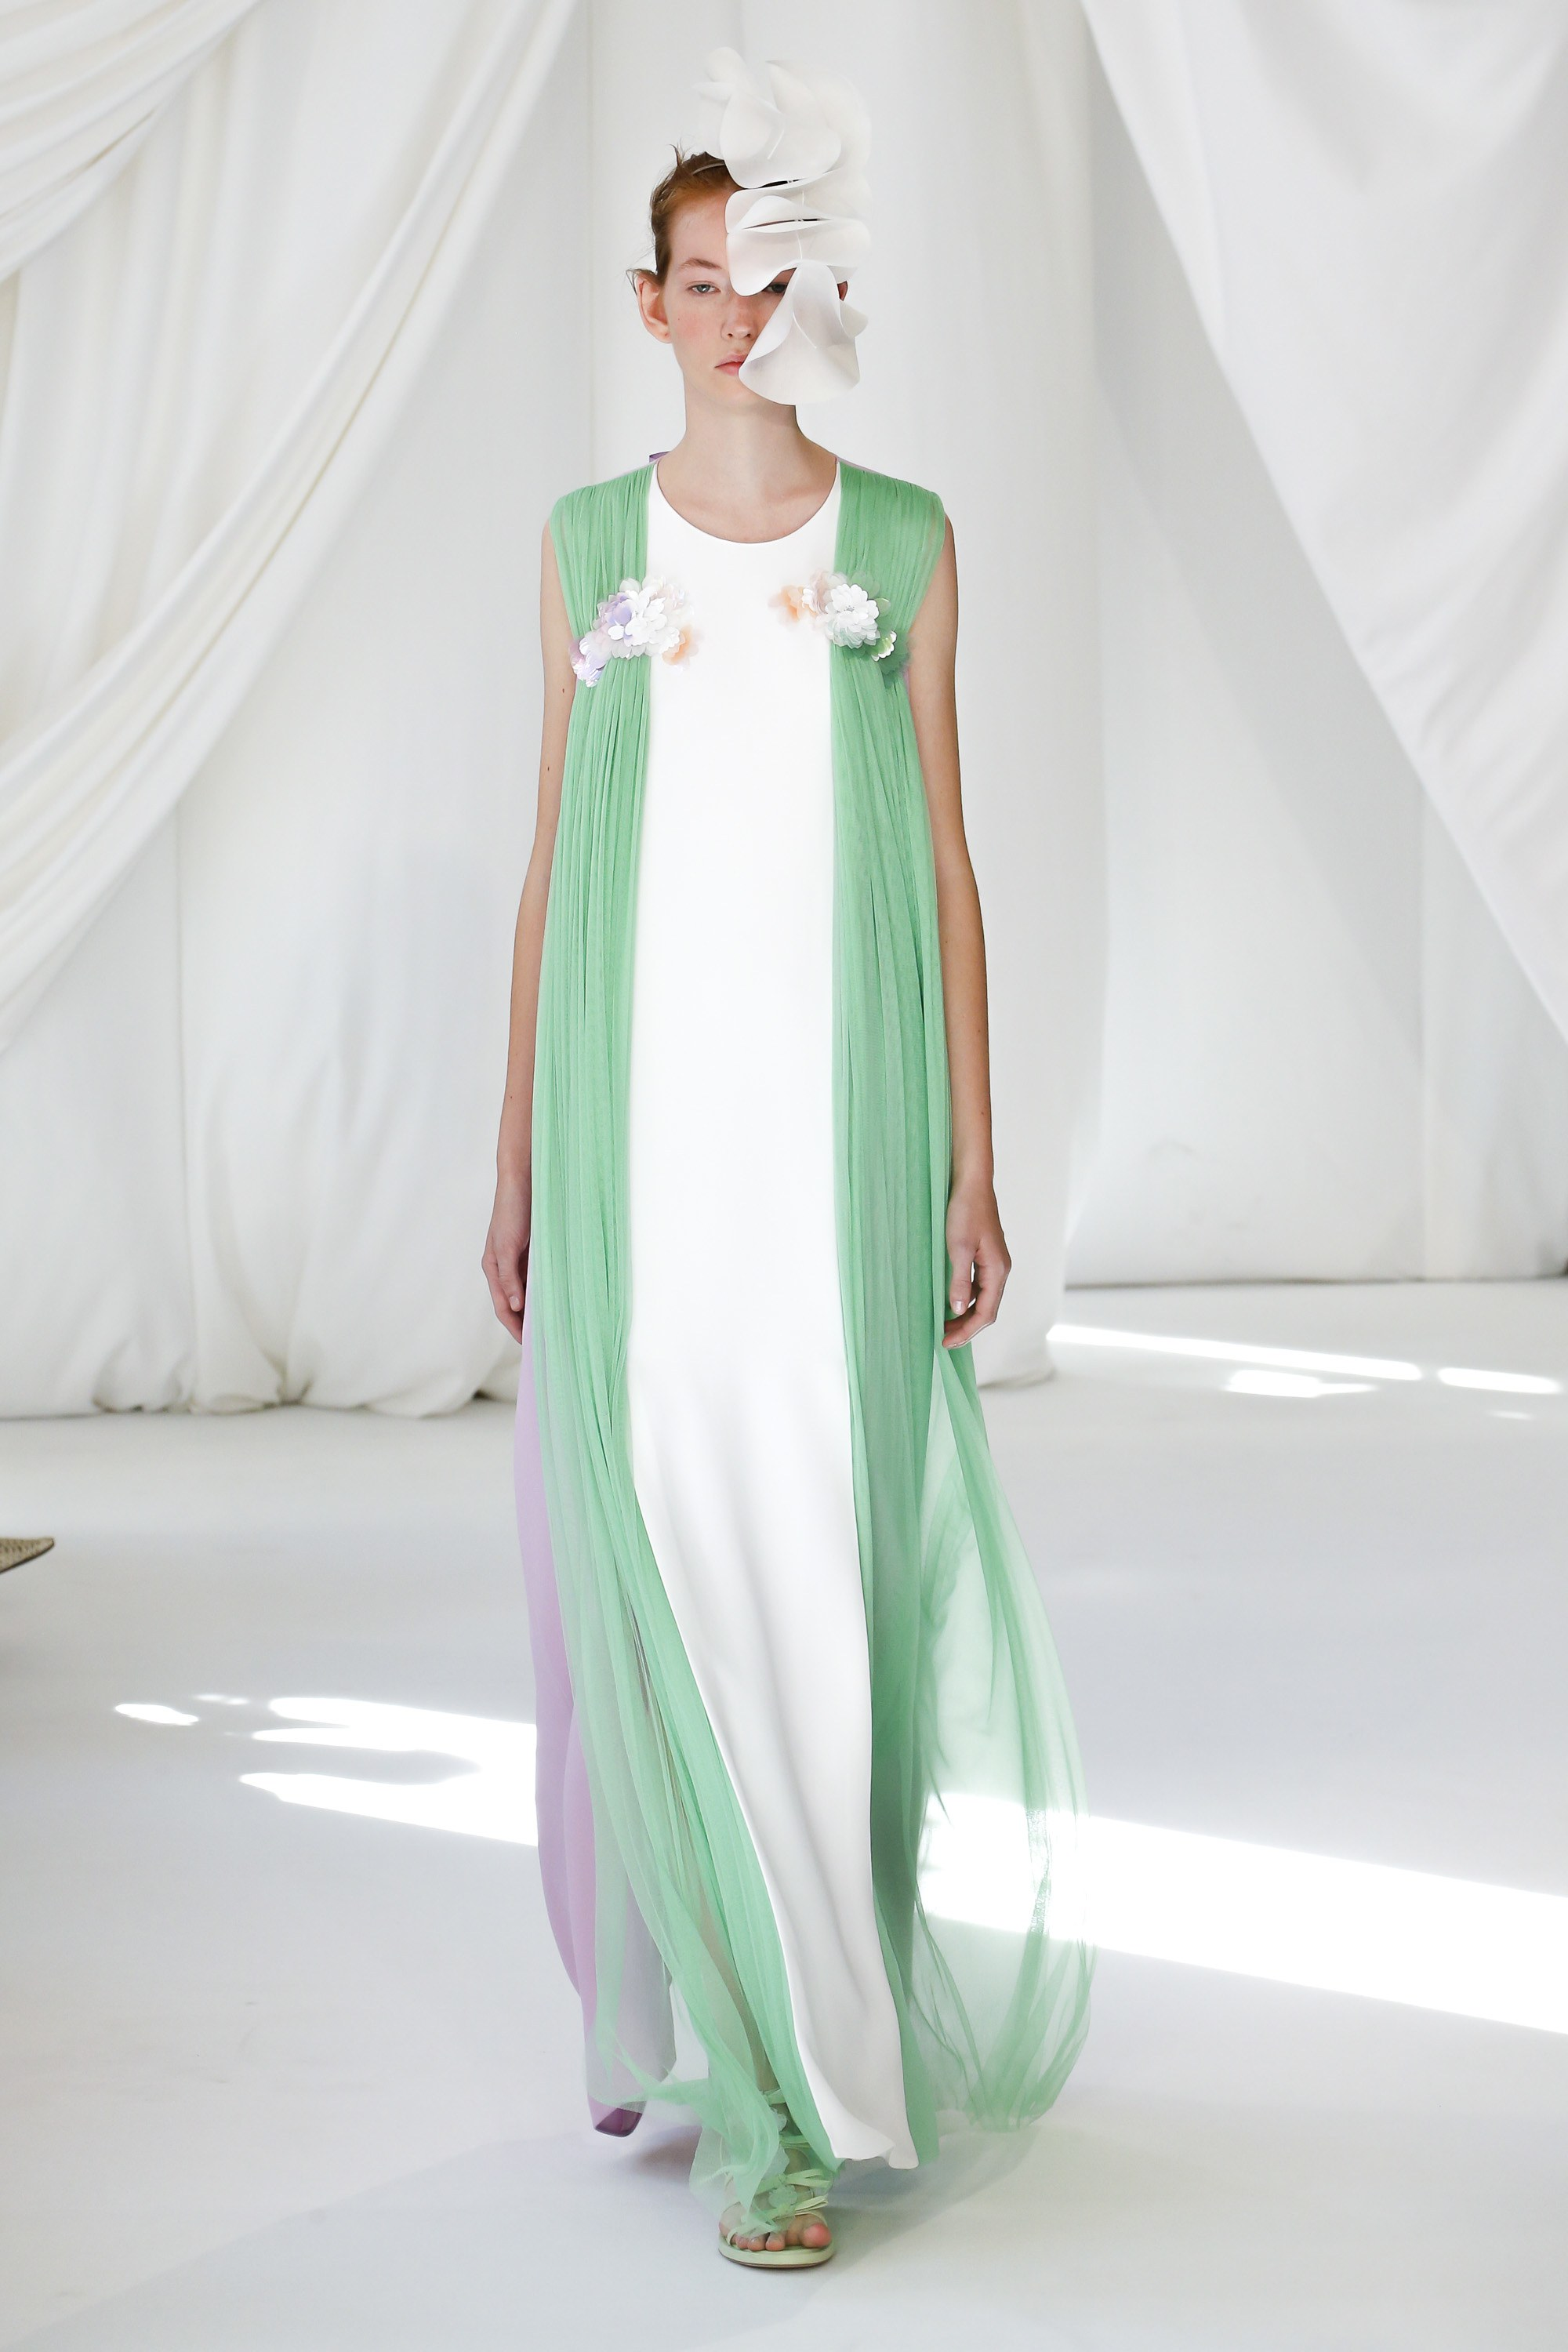 Delpozo SS19 (Photo: Vogue.com)